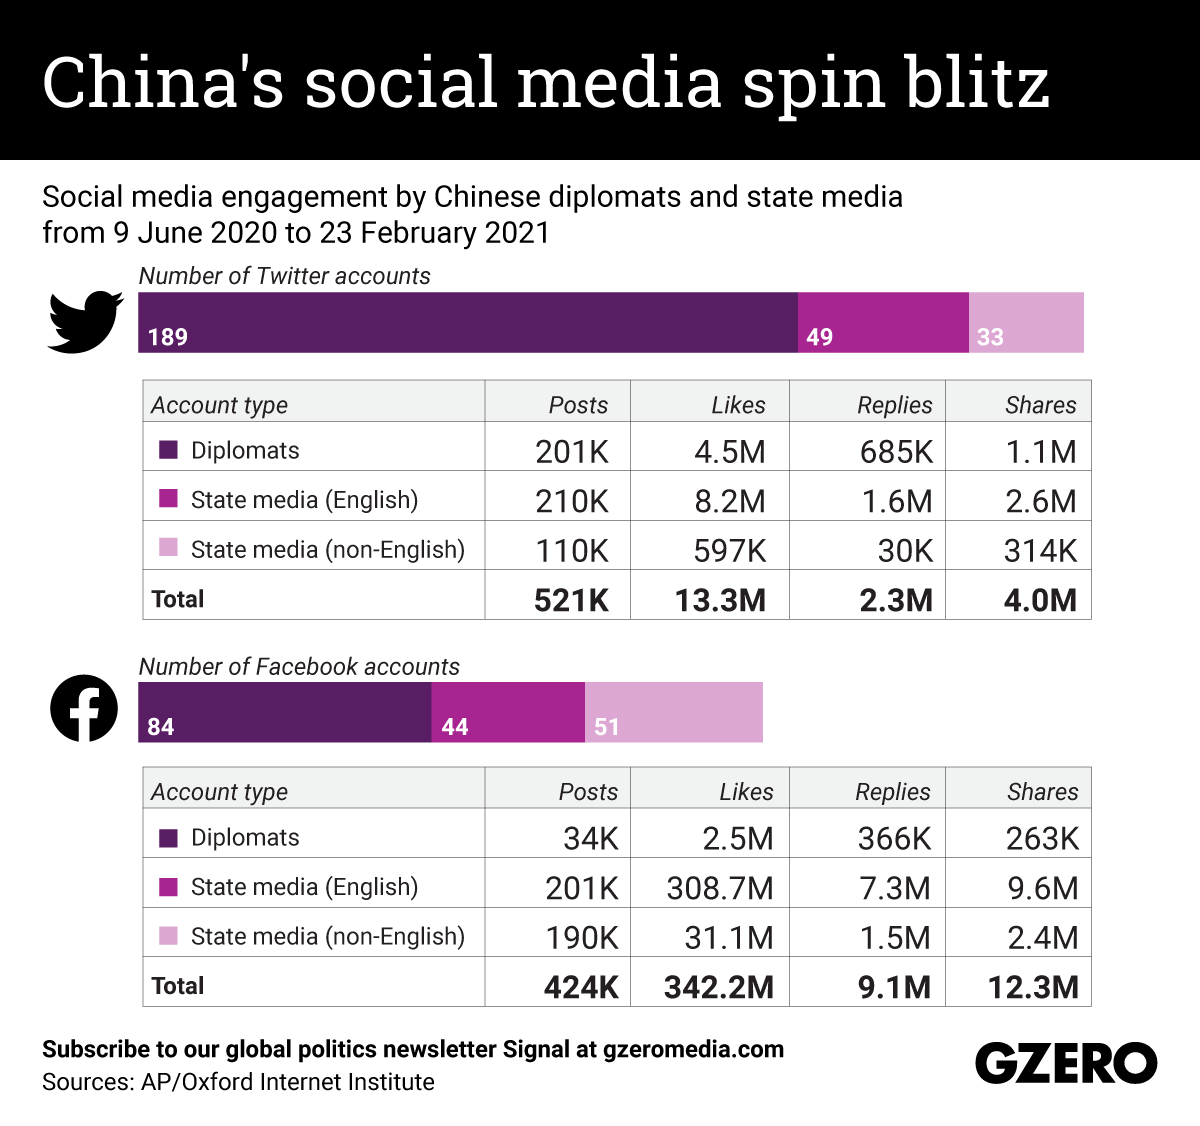 The Graphic Truth: China's social media spin blitz